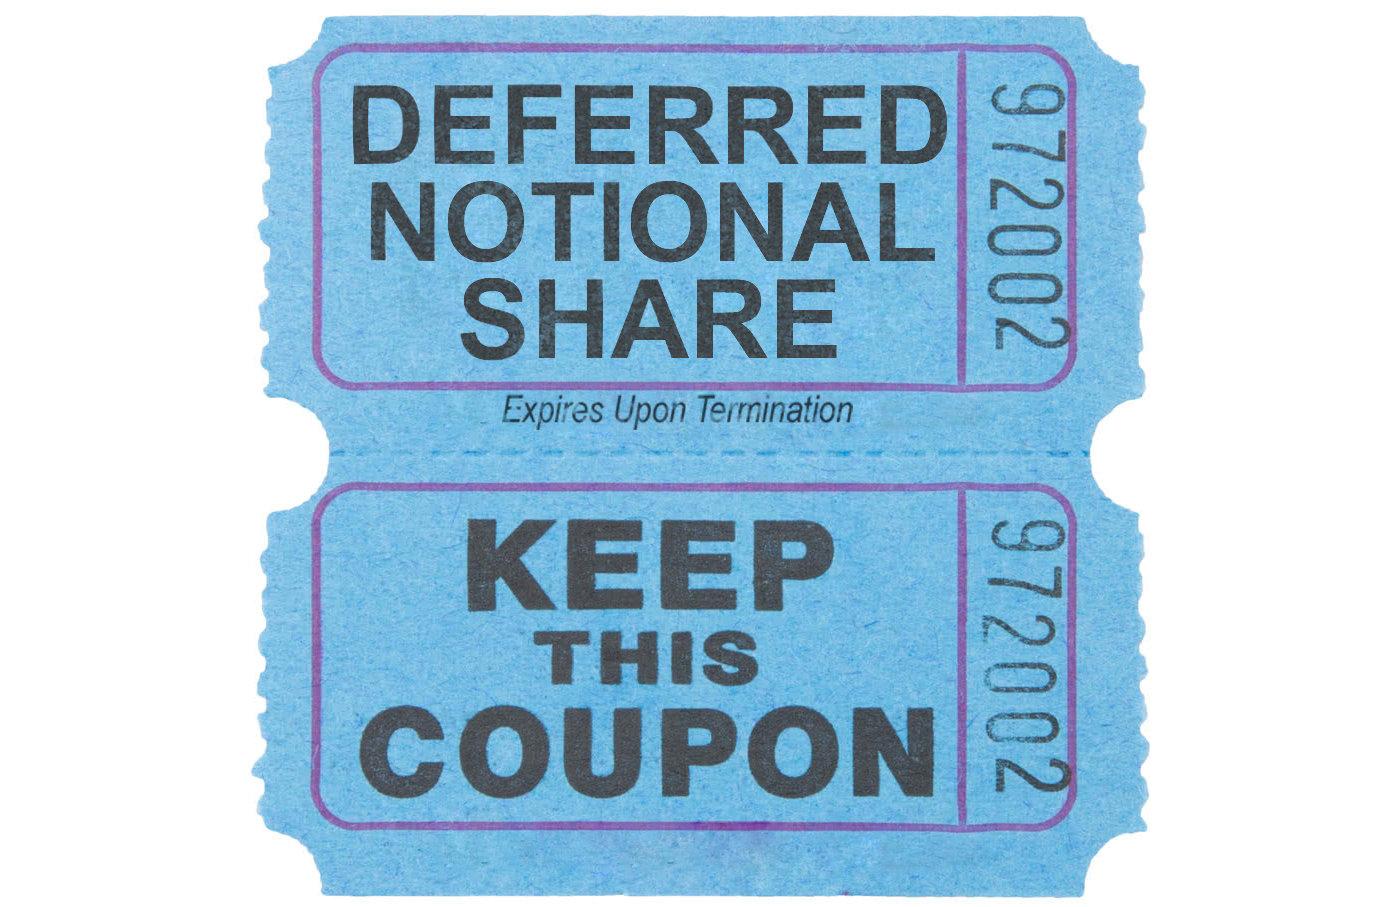 This carnival ticket is a sarcastic representation of pay in the form of deferred notional shares which vest in the future and expire after termination.